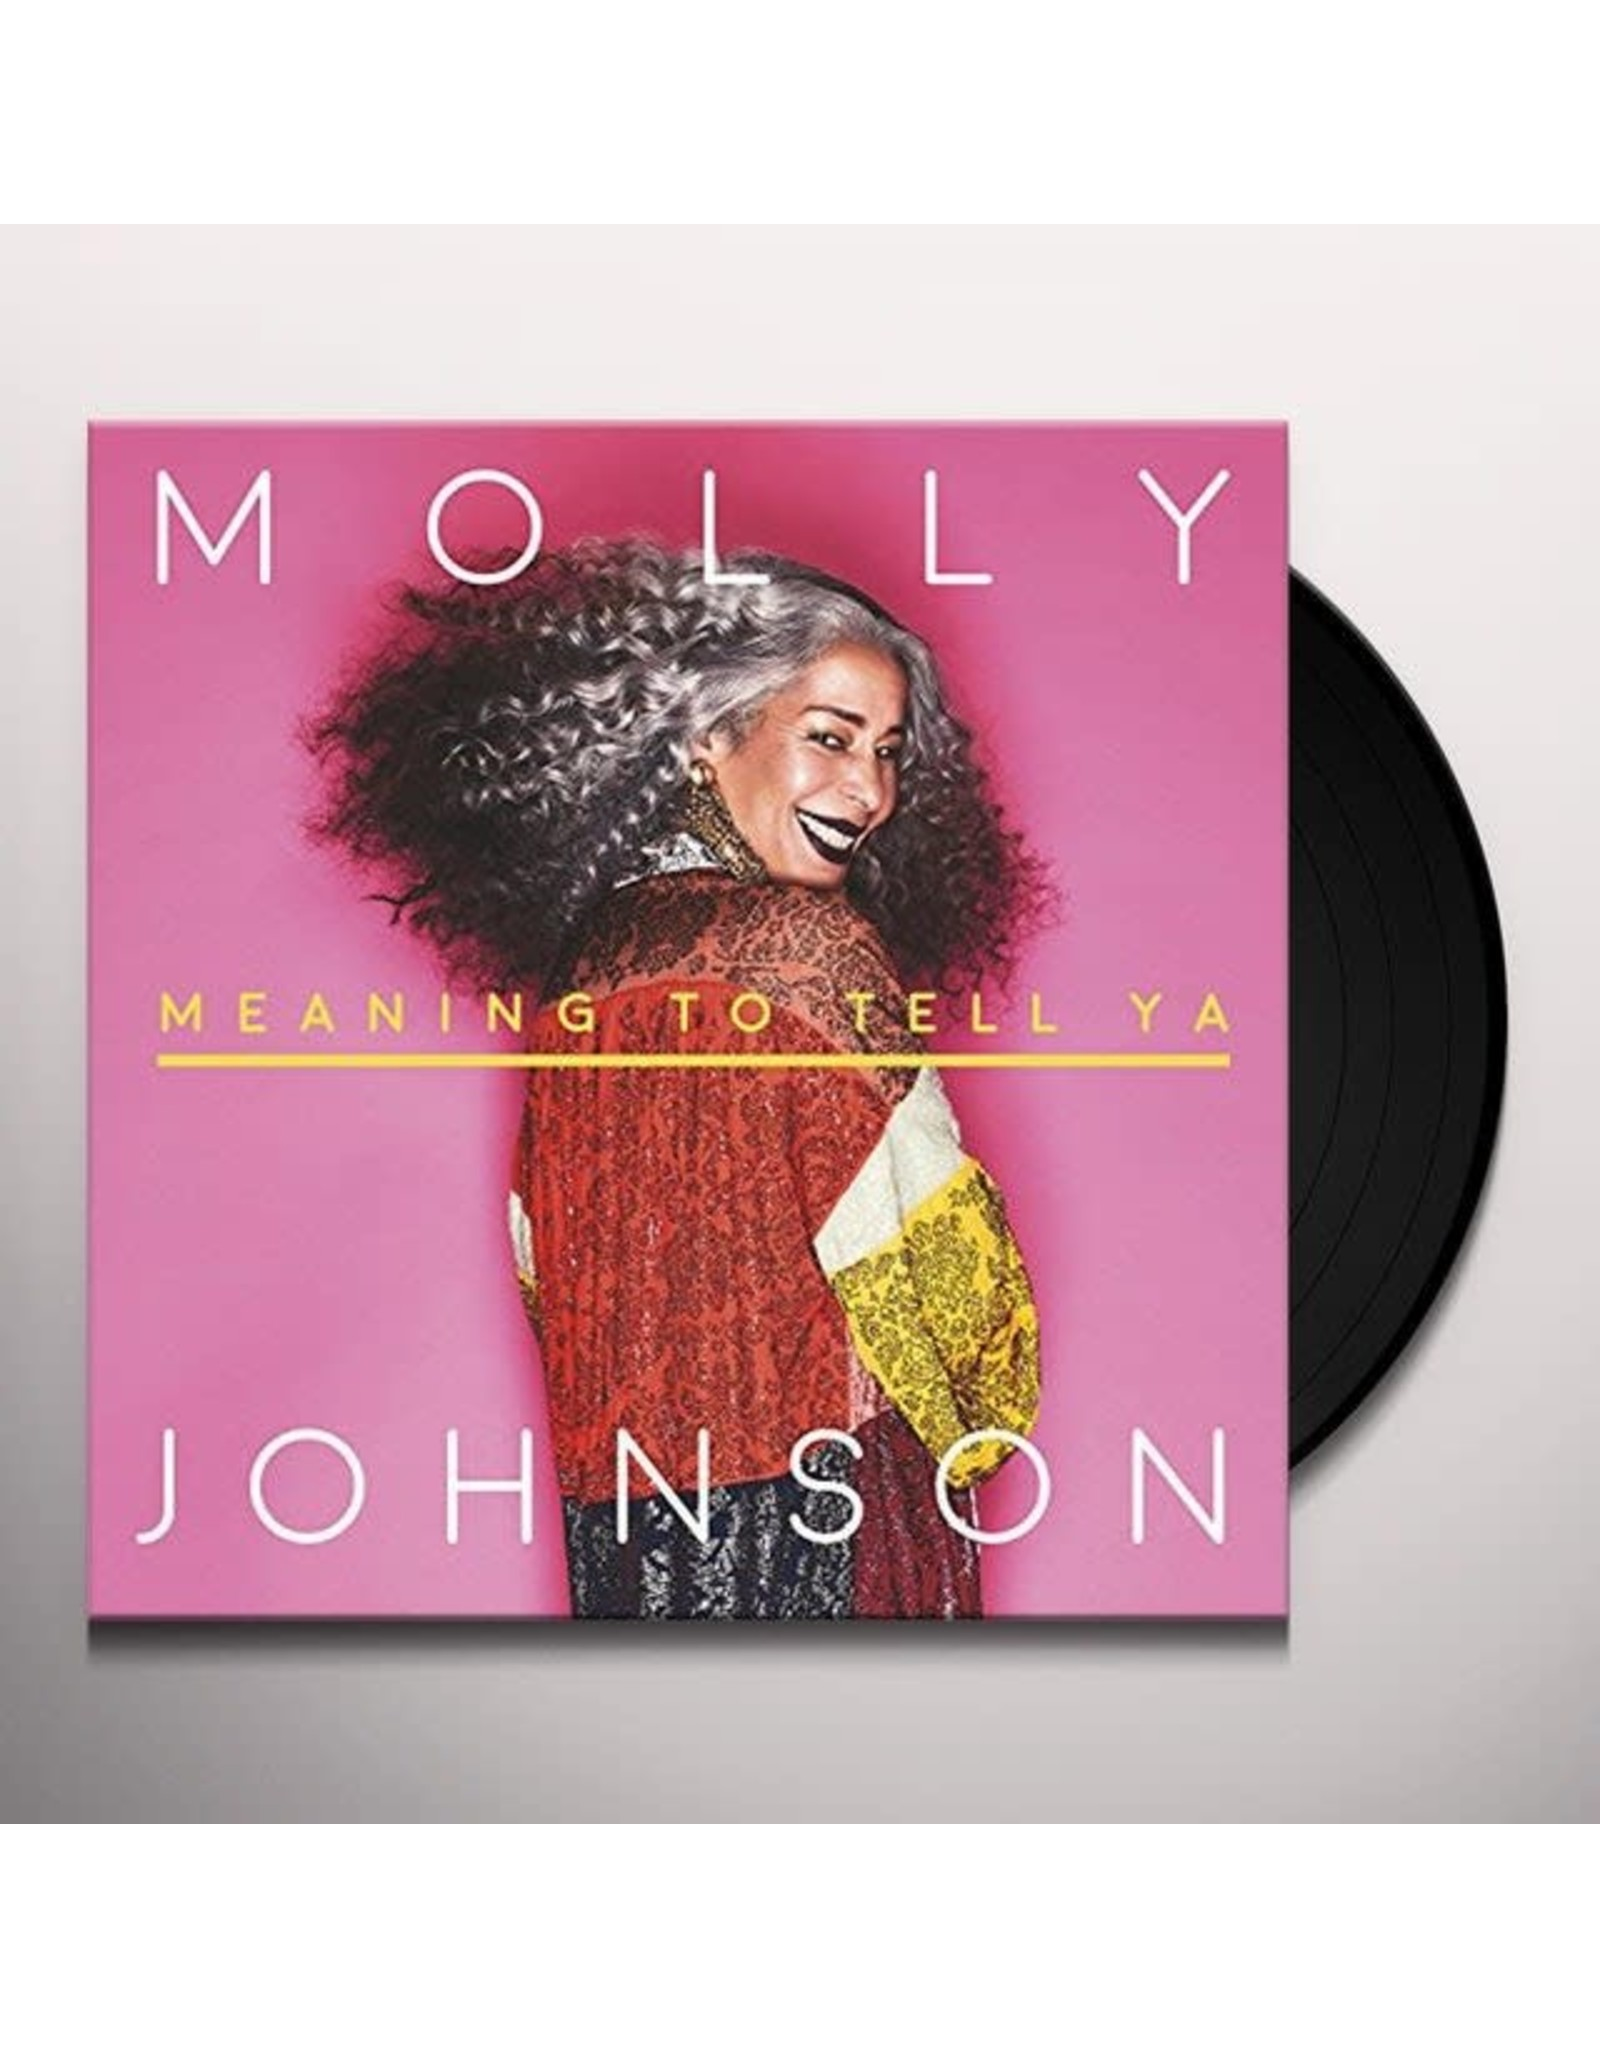 Johnson, Molly - Meaning To Tell Ya LP